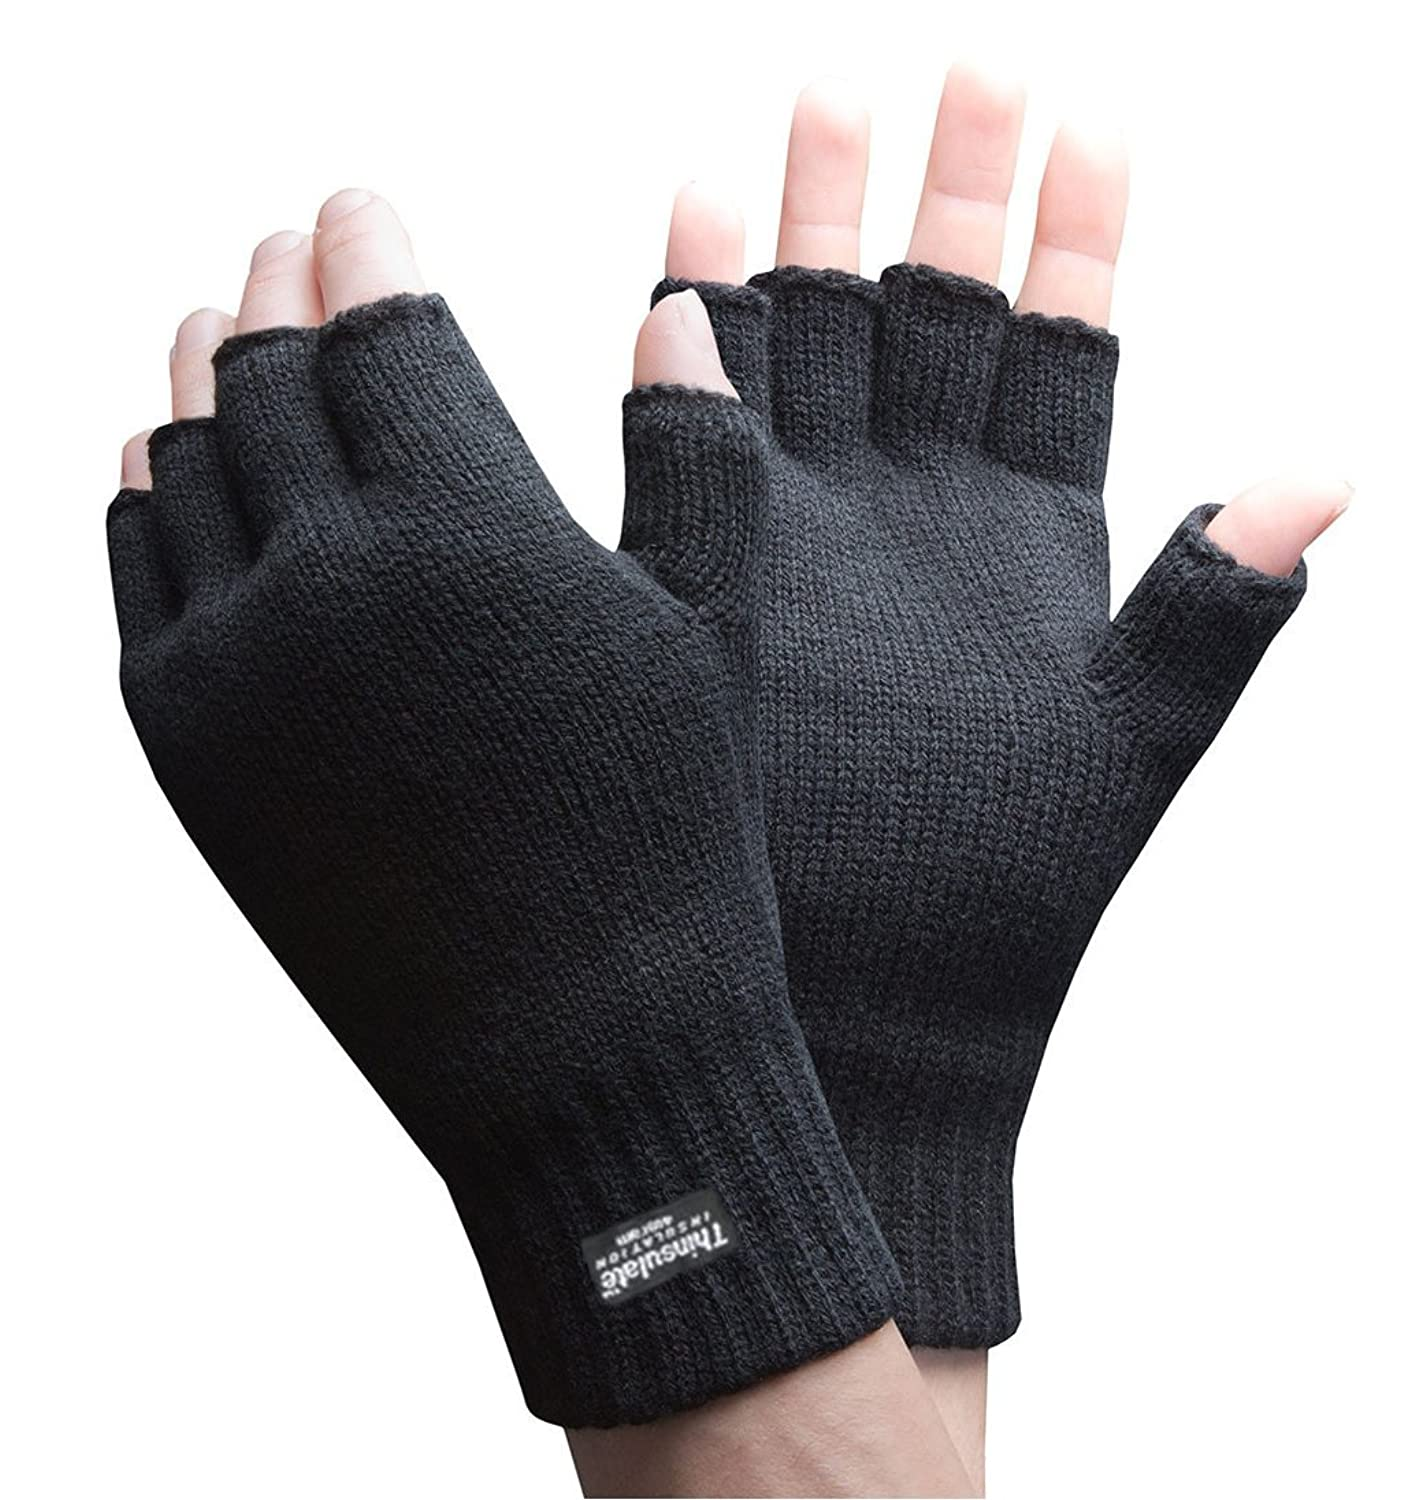 Mens 3M Thinsulate 40 gram Thermal Insulated Black Knit Winter ...